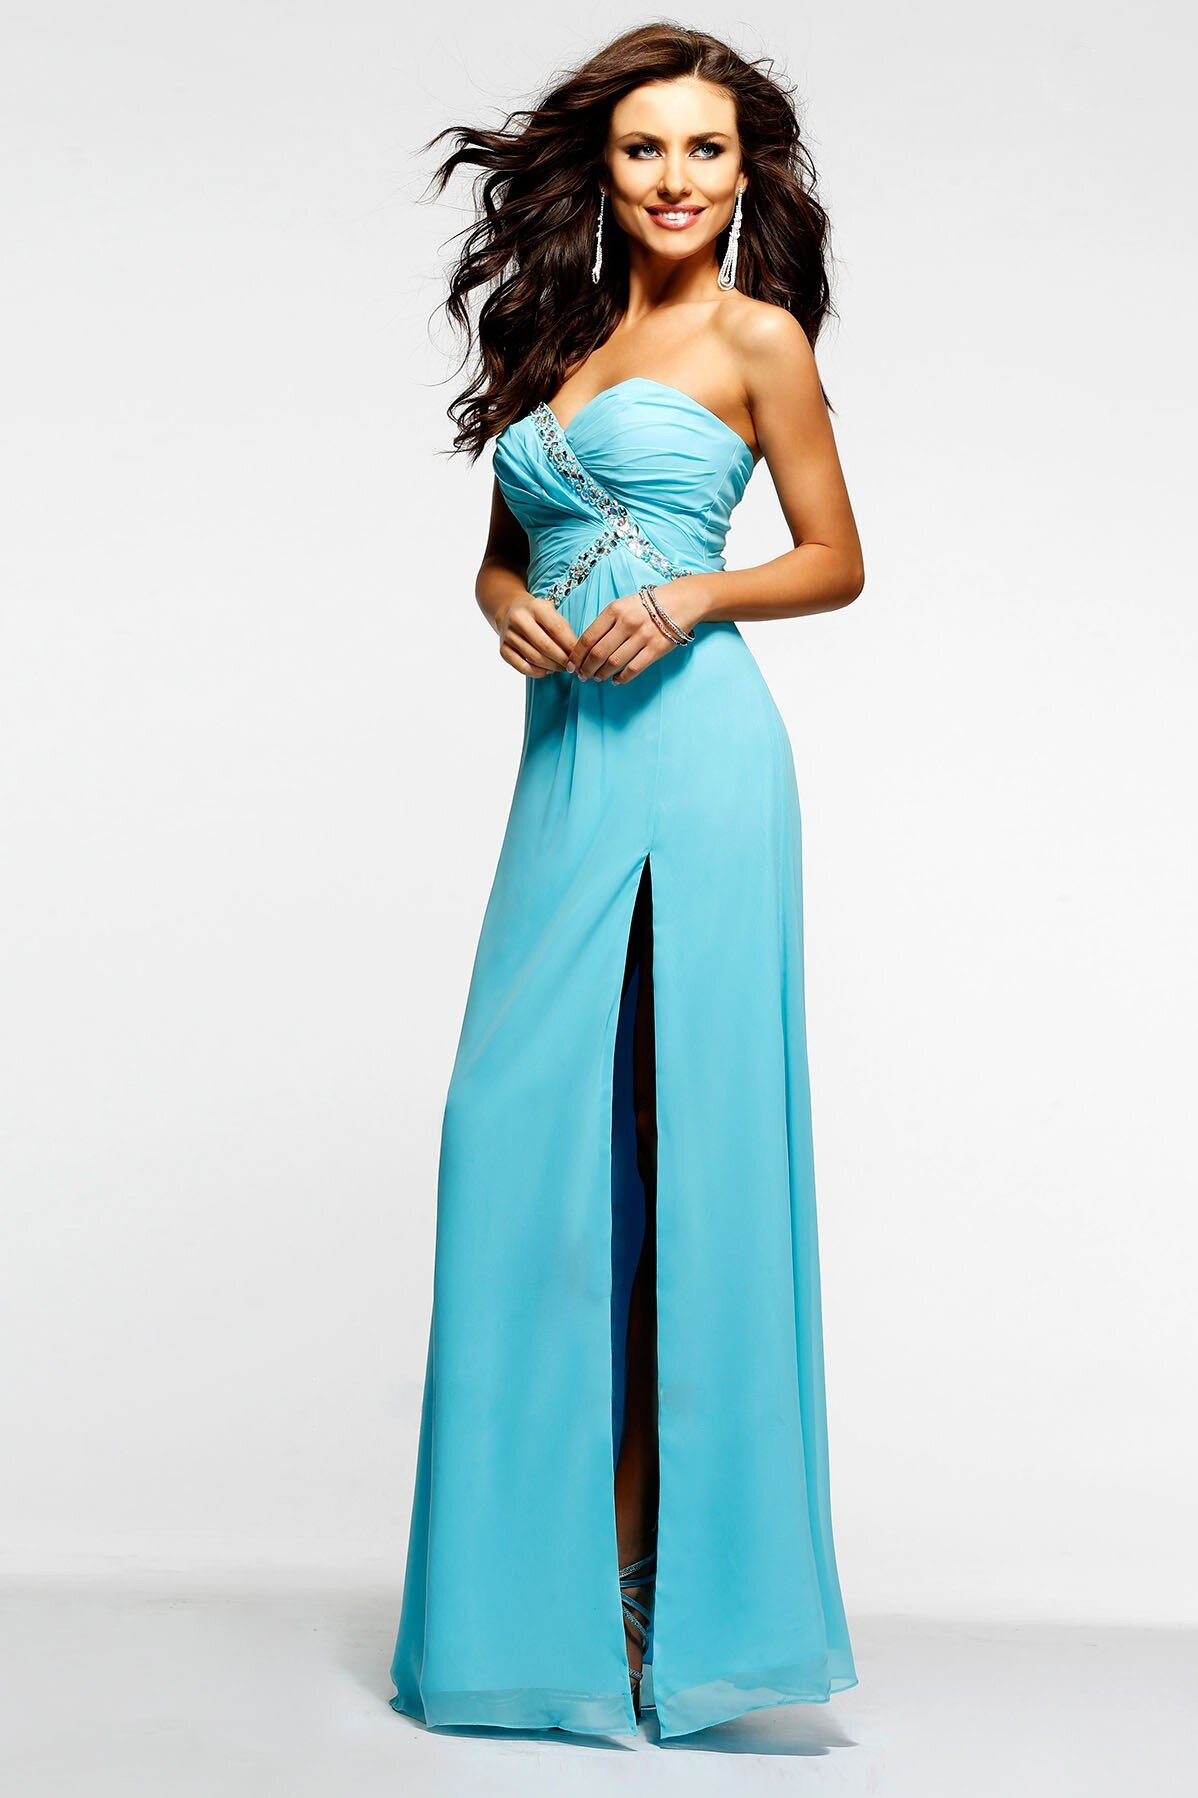 Elegant dresses for wedding guest: Pictures ideas, Guide to buying ...